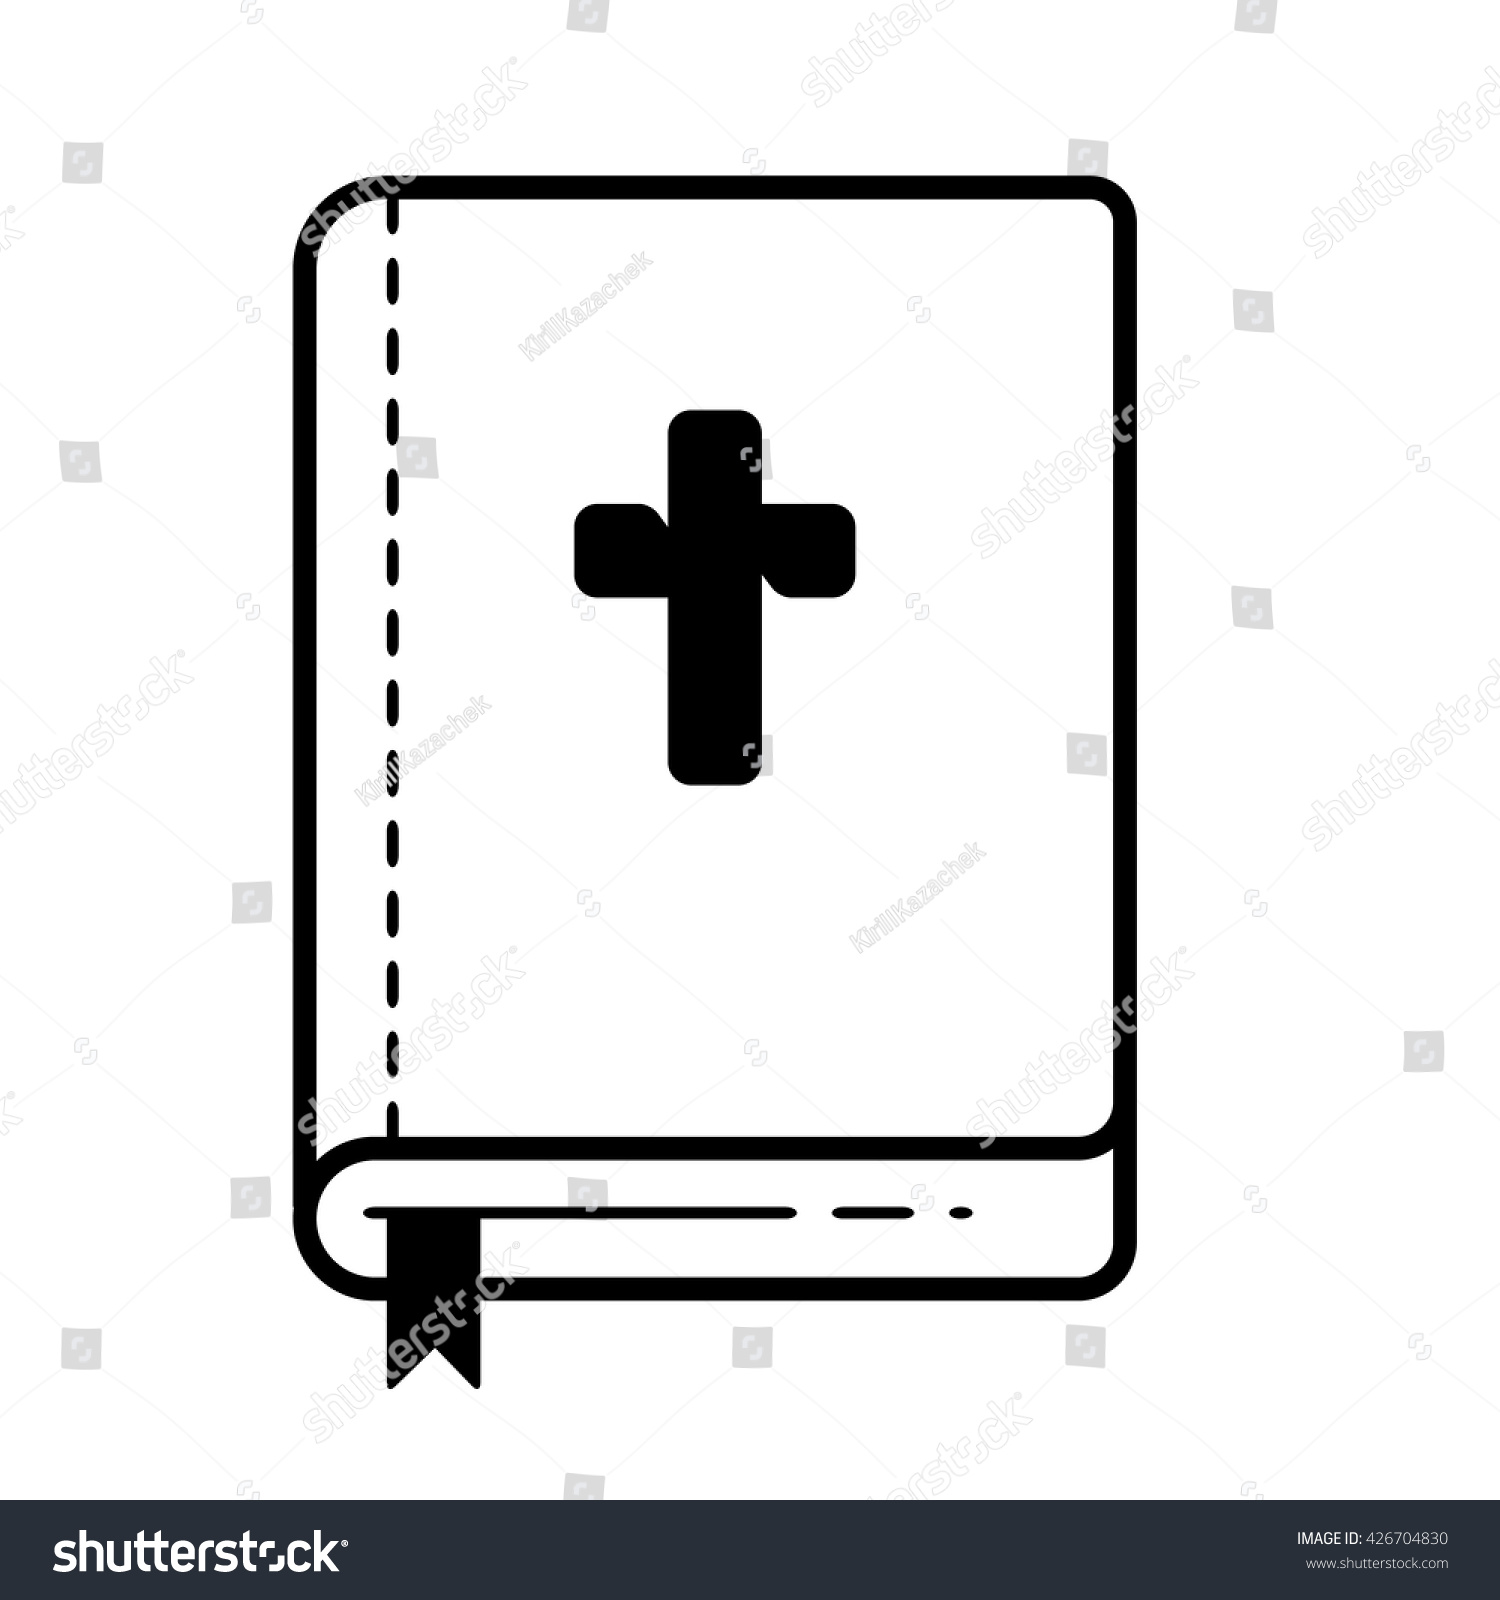 Book bible holly word cross christ stock vector 426704830 book bible holly word cross christ buycottarizona Choice Image